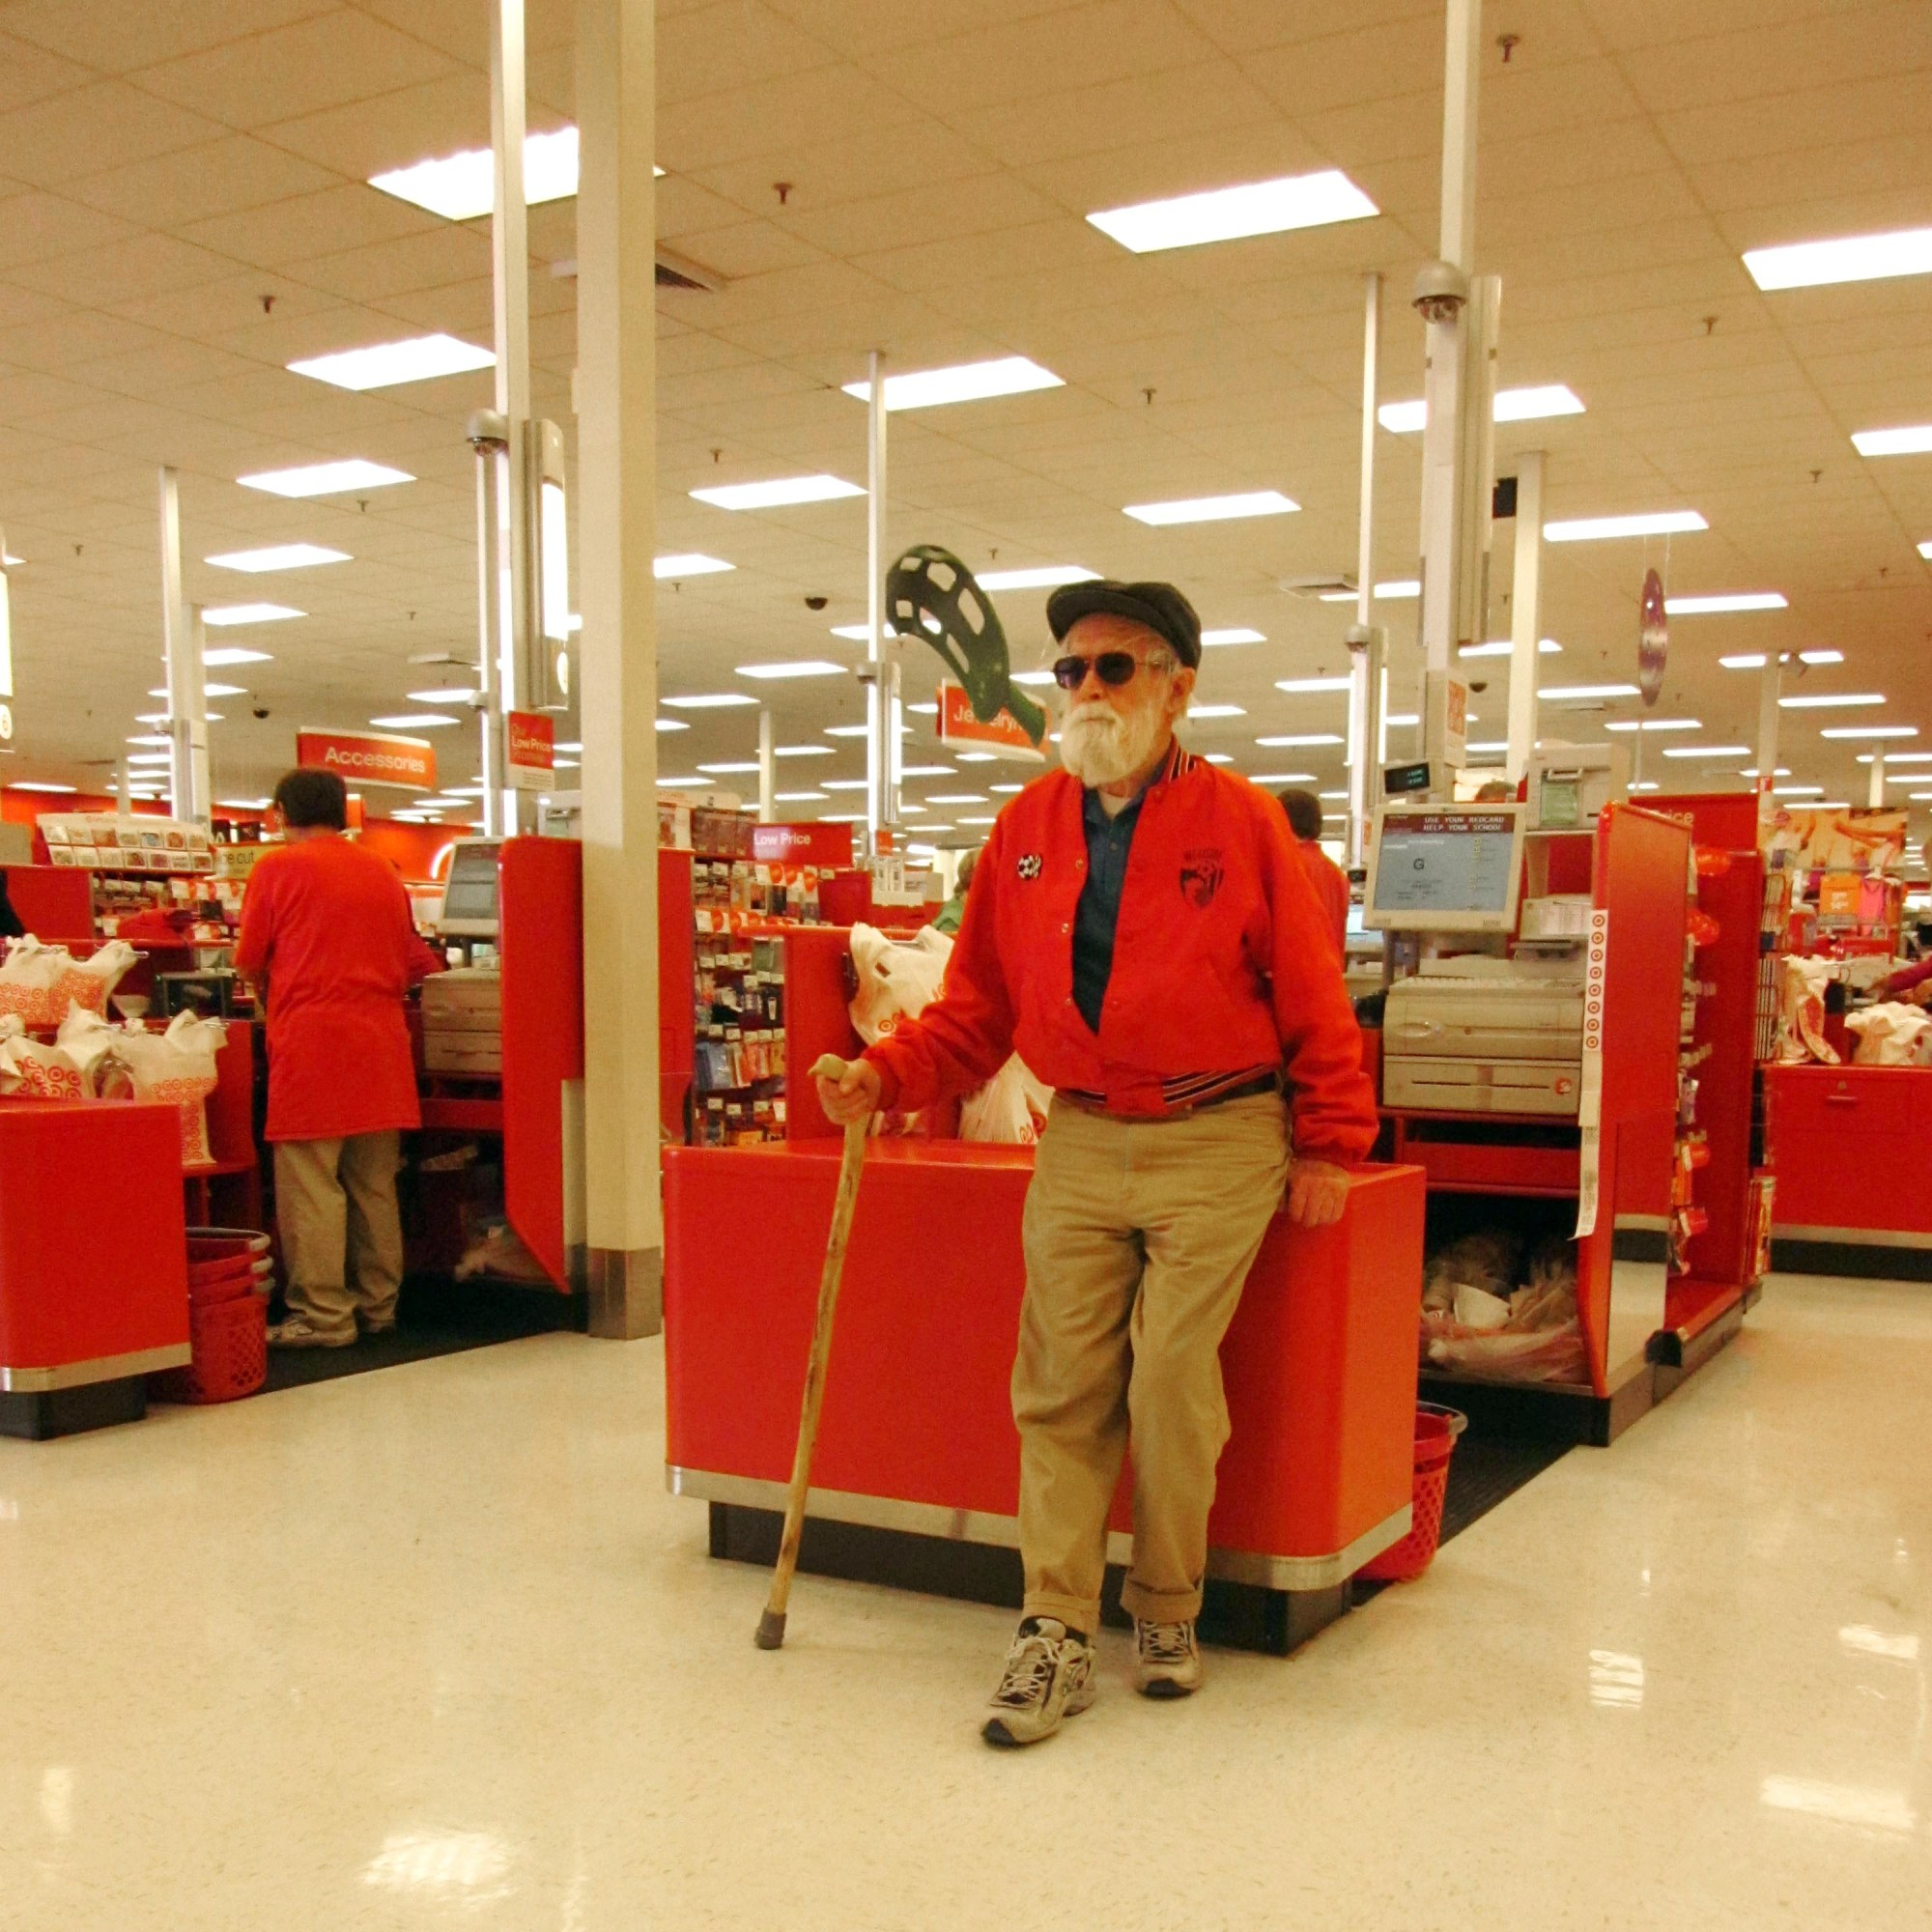 Tank leans casually against an unused checkout desk at Target beneath florescent lights that disappear into the horizon. He's wearing a bright red jacket, half unsnapped, and khaki pants with tennis shoes. He's bearded, wearing sunglasses. He's holding his handcarved stick and wearing a newsboy cap.